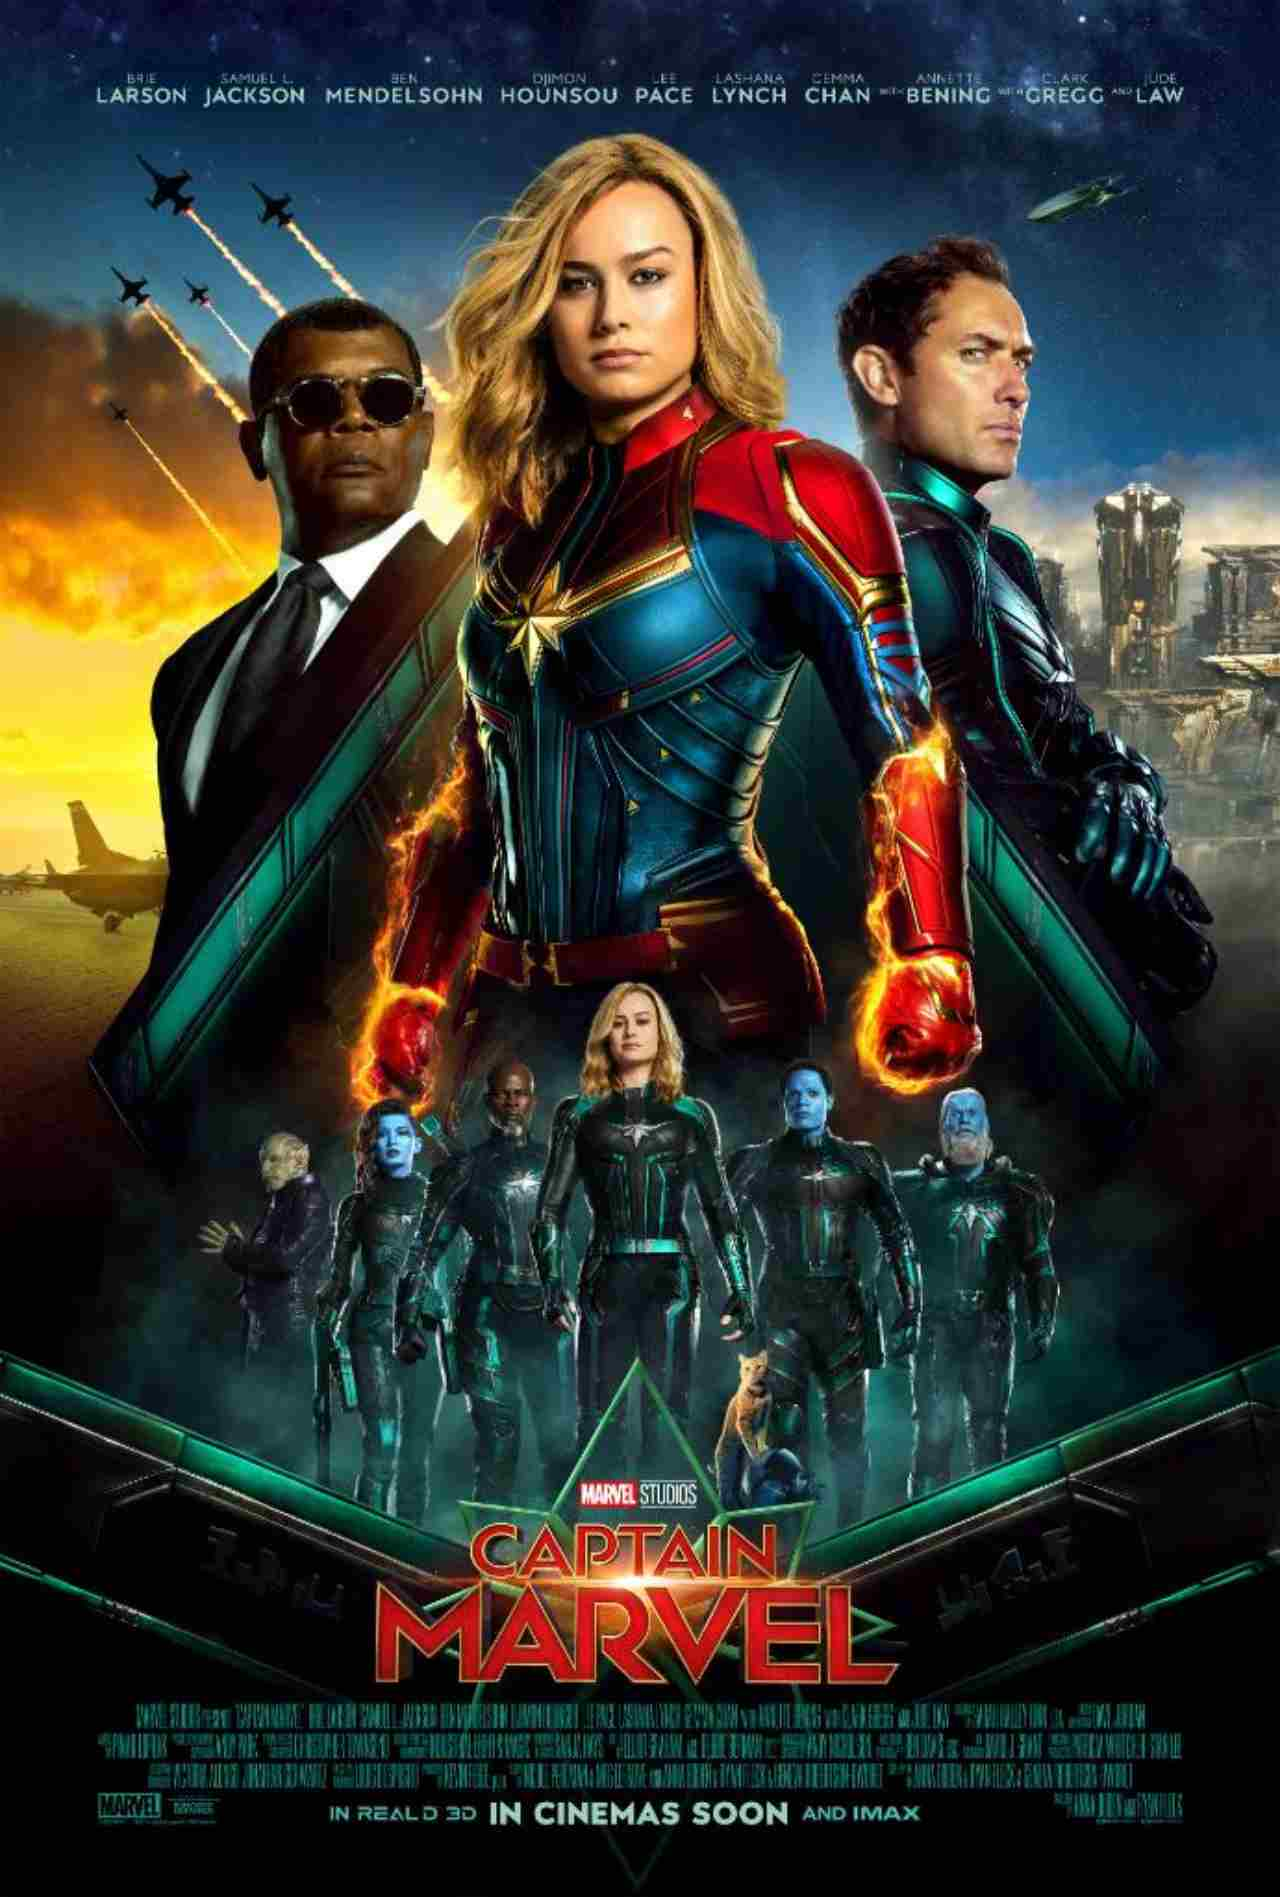 Captain Marvel | Box Office: Rs 85 crore (expected) | Marvel films have a strong audience base in India and that was evident in the recent release - Captain Marvel, which opened huge at Rs 13.01 crore. This was in fact the second biggest opening ever for a Hollywood film in India after Avengers: Infinity War. The movies wasn't warmly received by one and all but still managed to hang on well to go pass the Rs 80 crore mark. (Image: Captain Marvel/Twitter)